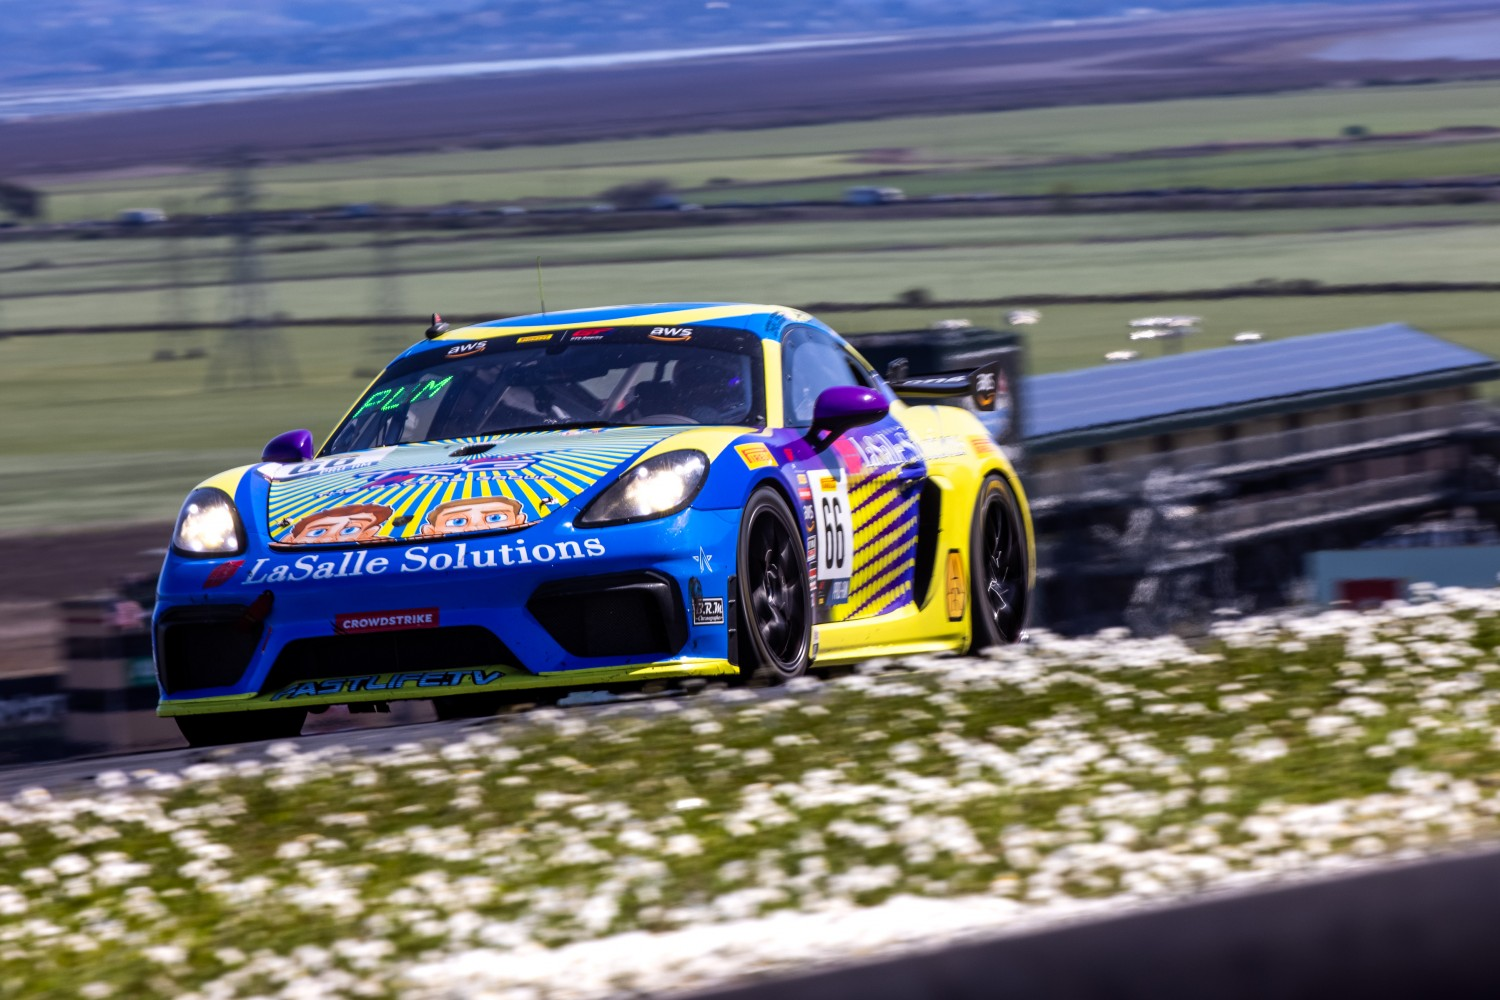 #66 Porsche 718 Cayman GT4 CLUBSPORT MR of Derek DeBoer and Spencer Pumpelly, TRG-The Racers Group, Pro-Am, Pirelli GT4 America,